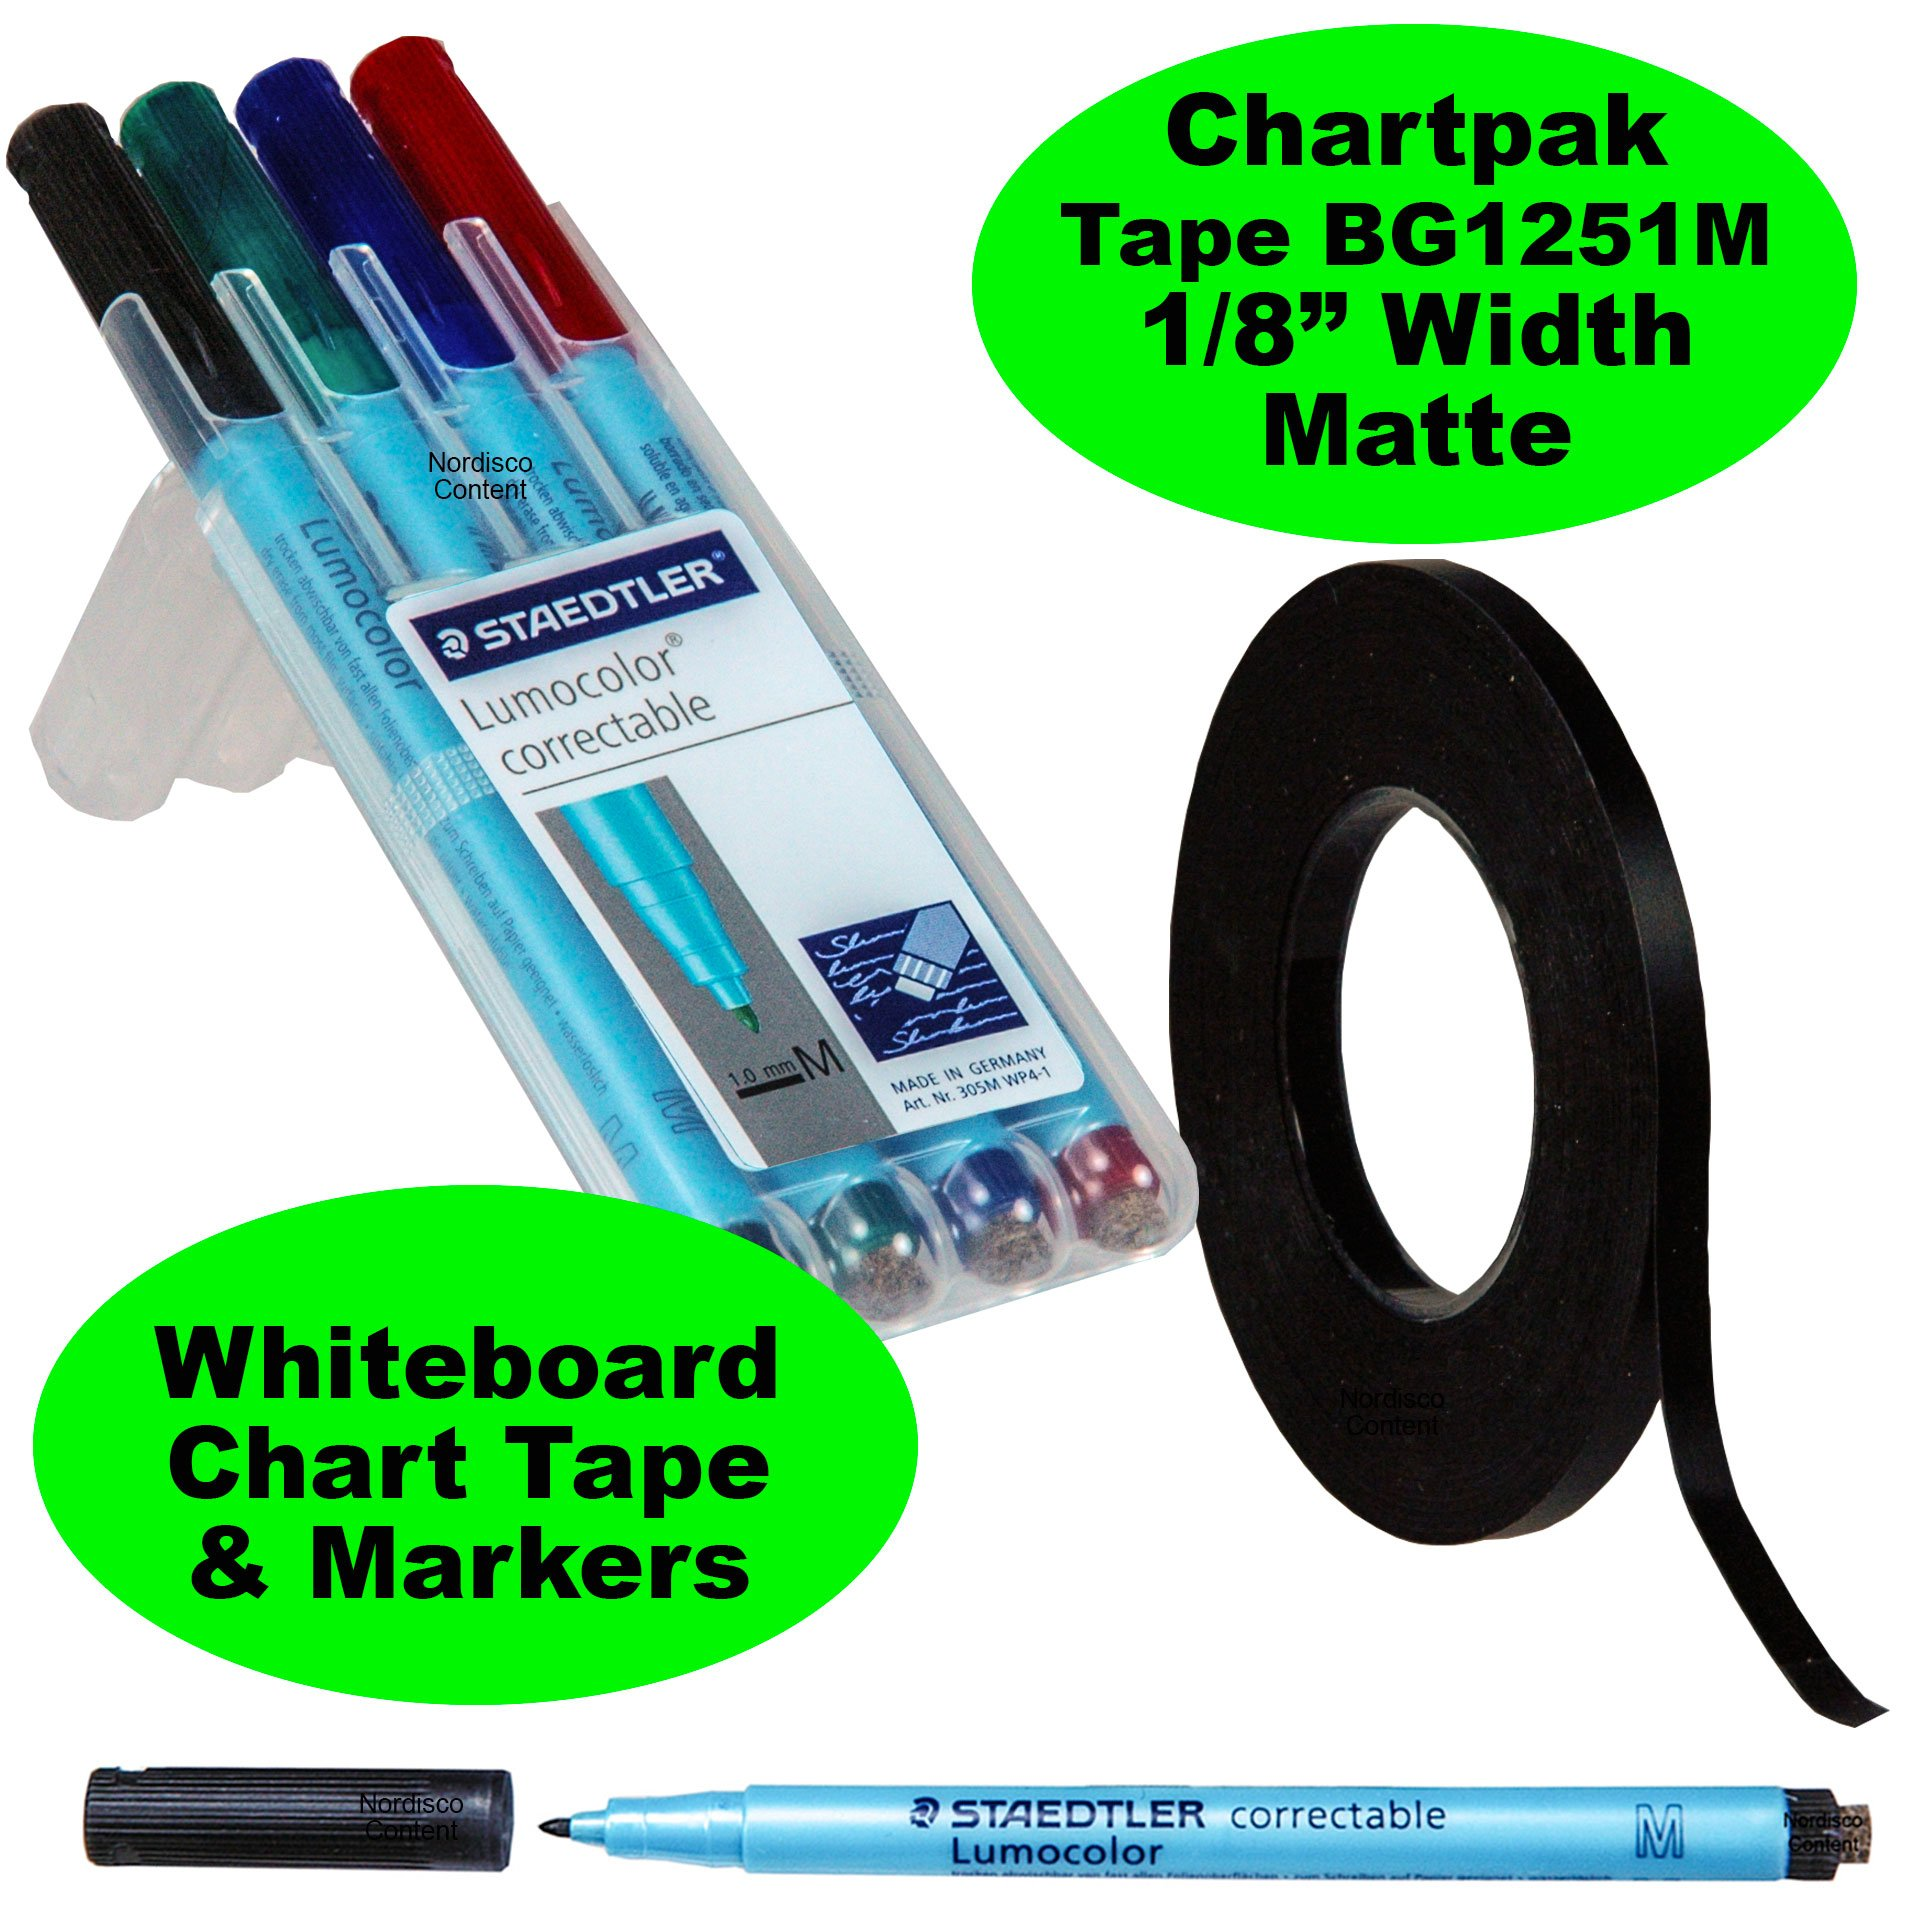 Chartpak Graphic Chart Tape Matte Black Bg1251m 1/8'' Plus a Set of 4 Staedtler Lumocolor Correctable Dry Erase Pens 1.0mm Medium Point